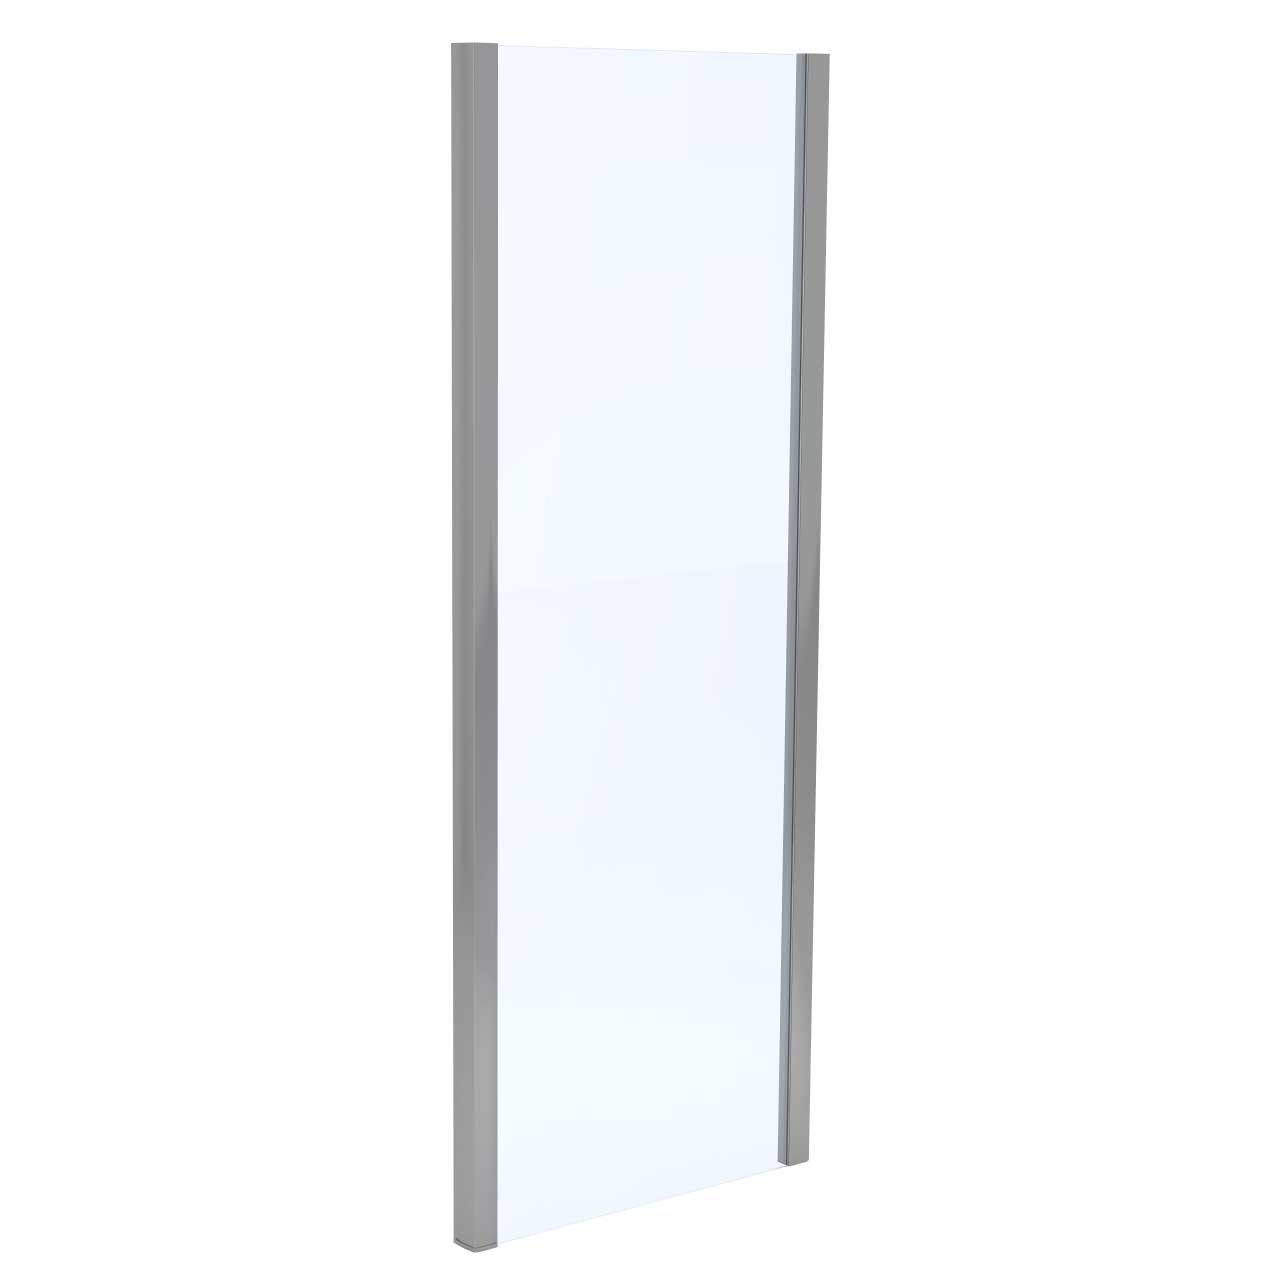 Series 6 1700 x 700 Sliding Door Enclosure